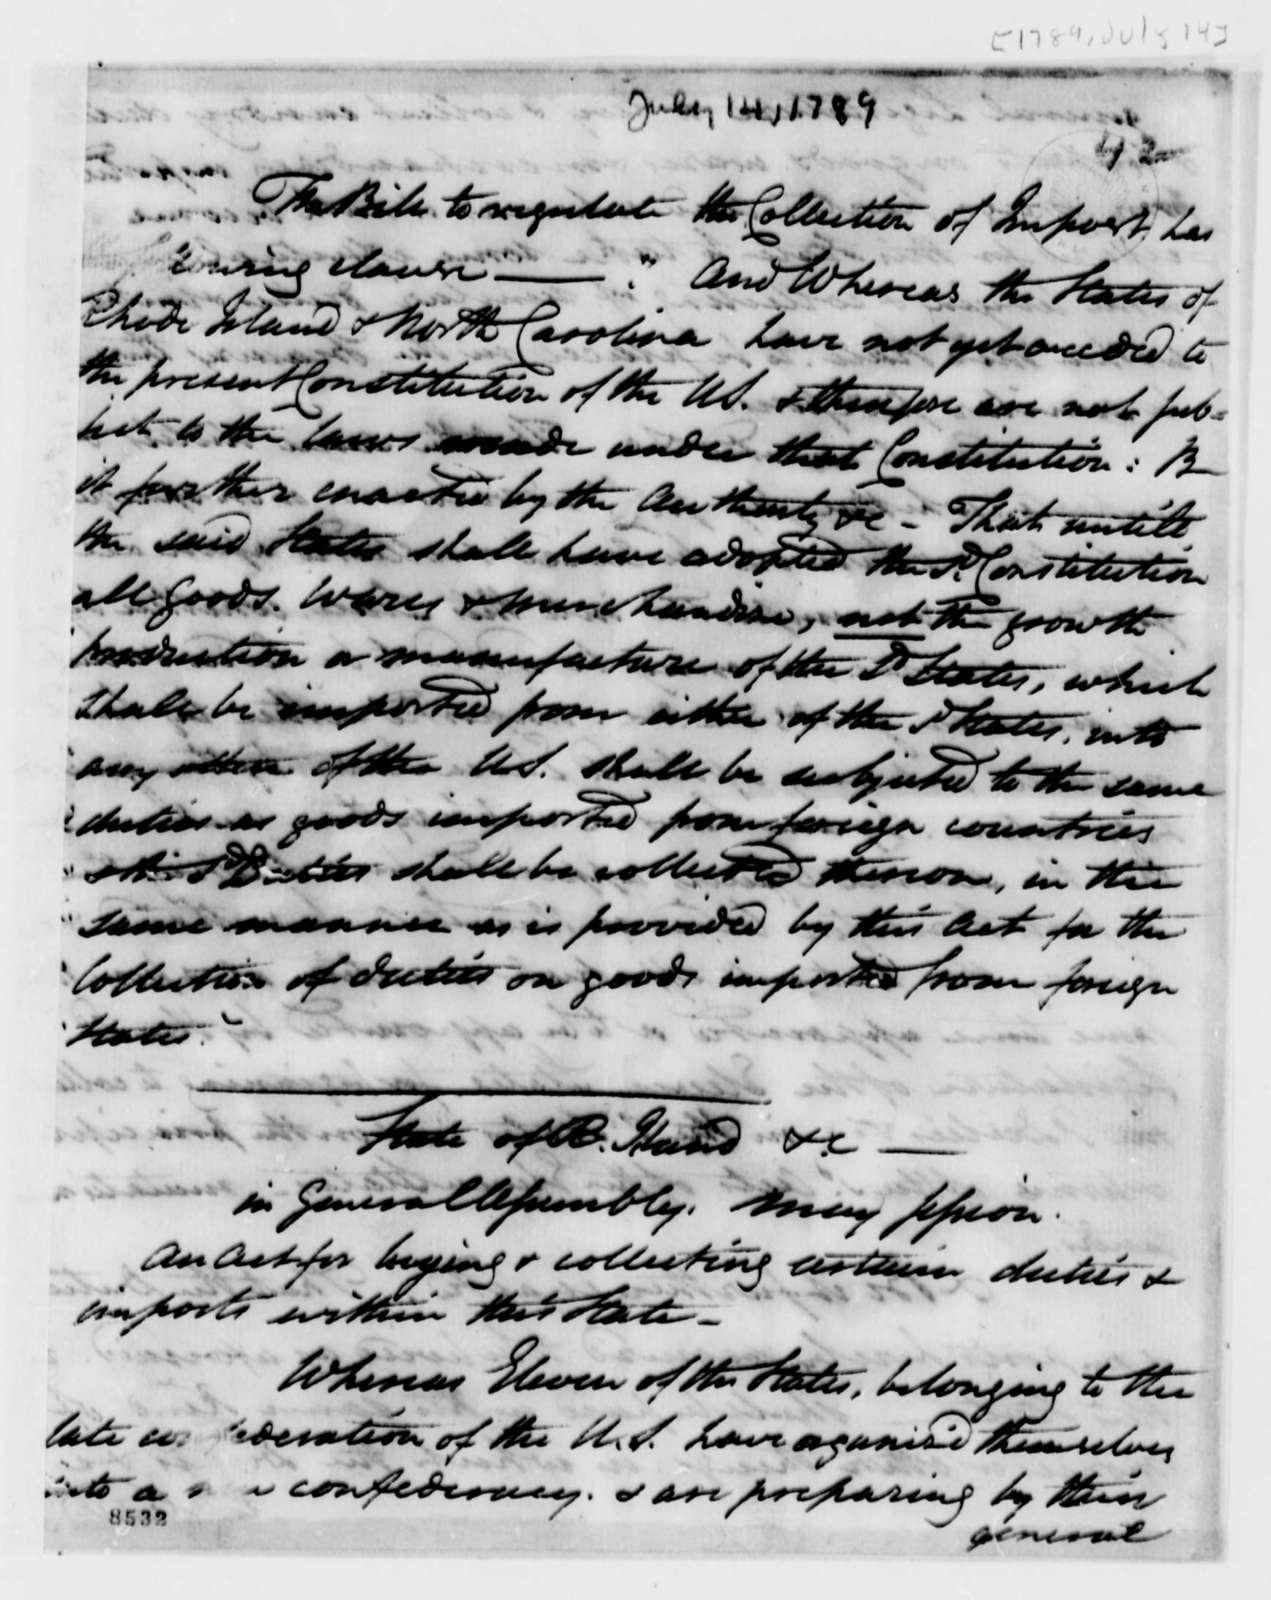 John Trumbull to Thomas Jefferson, July 14, 1789, with Extract